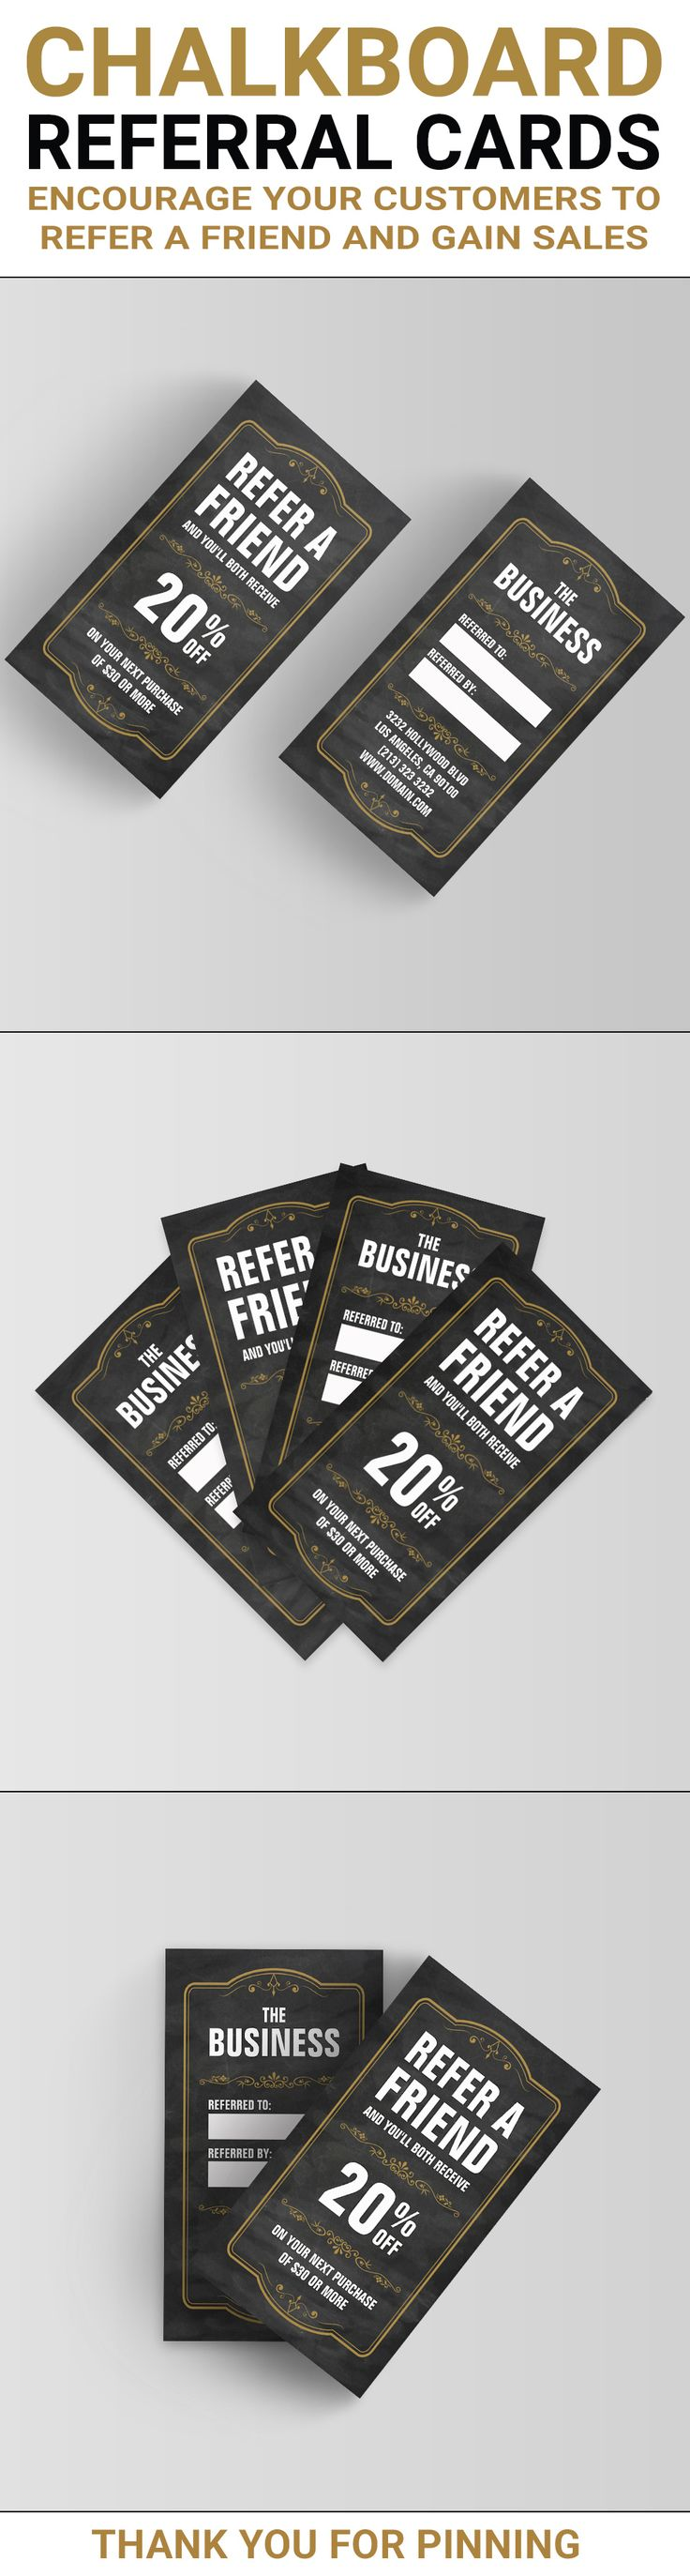 "Encourage your customers to refer a friend and generate more sales by offering a discount on one of your products or services. The design shows a chalkboard like background with a clay colored floral frame and floral elements. The chalkboard referral cards come in the same size as a standard business card of 3.5"" x 2"". Check it out and  customize it to fit your needs. This chalkboard refer a friend referral card was created by J32 Design"